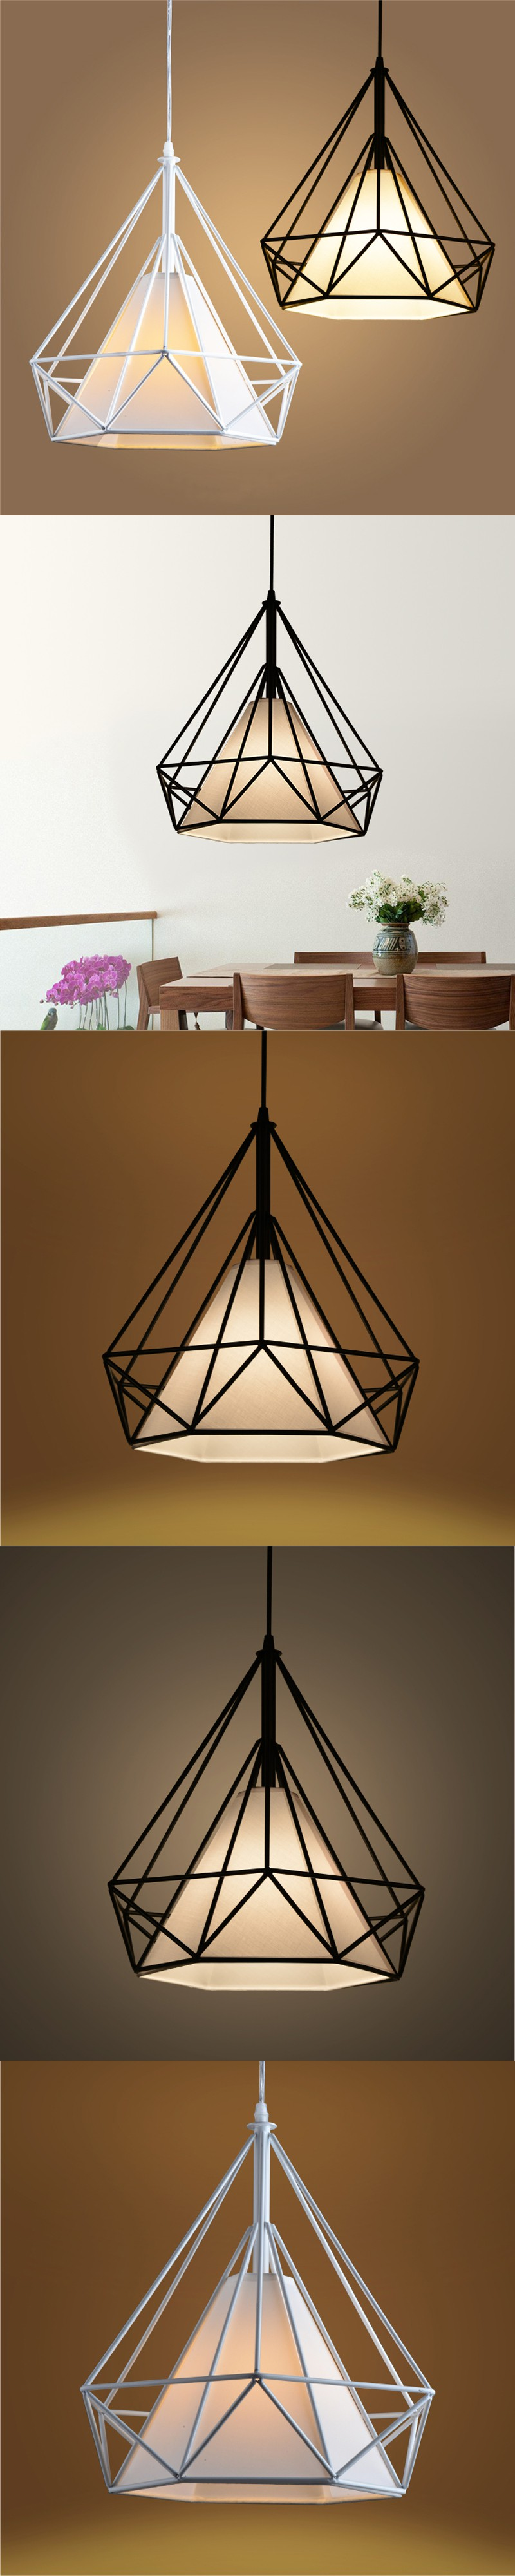 American Industrial Loft Vintage Geometric Cage Pendant Lights For Dining Room Iron Black E27 Edison Bulb Home Decoration Lamp